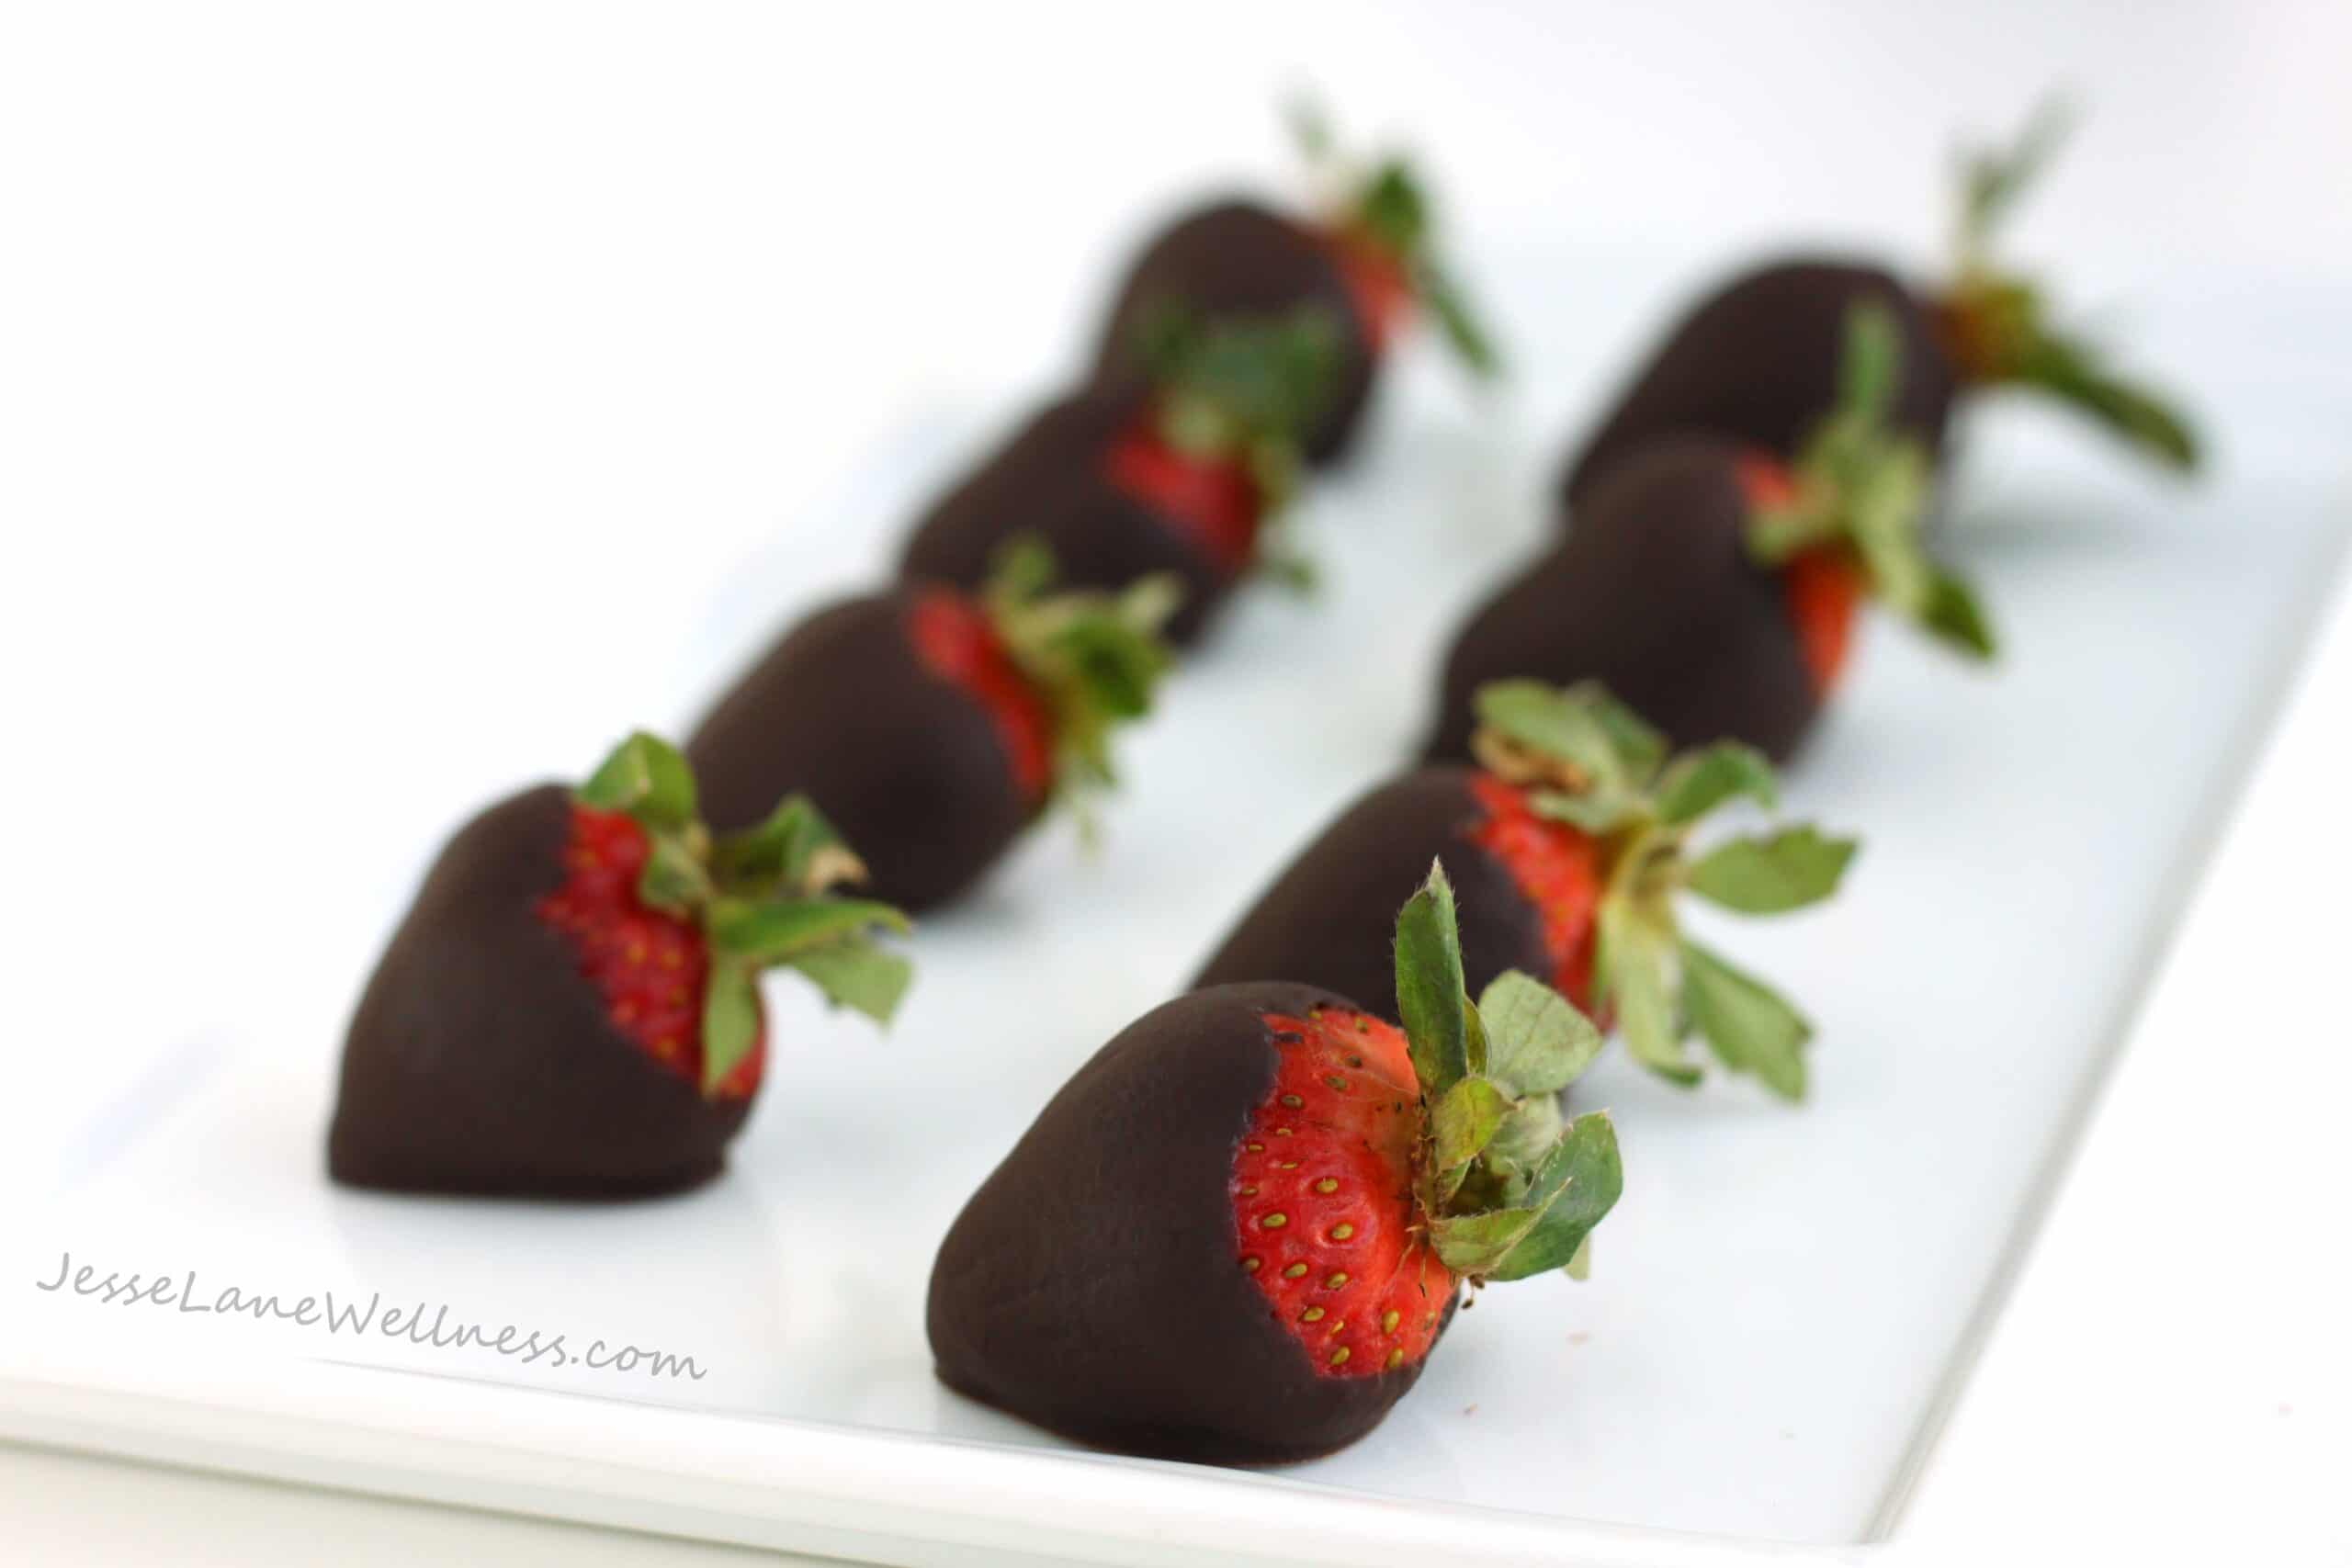 Homemade Chocolate Covered Strawberries by @jesselwellness #strawberries #chocolate #dairyfree